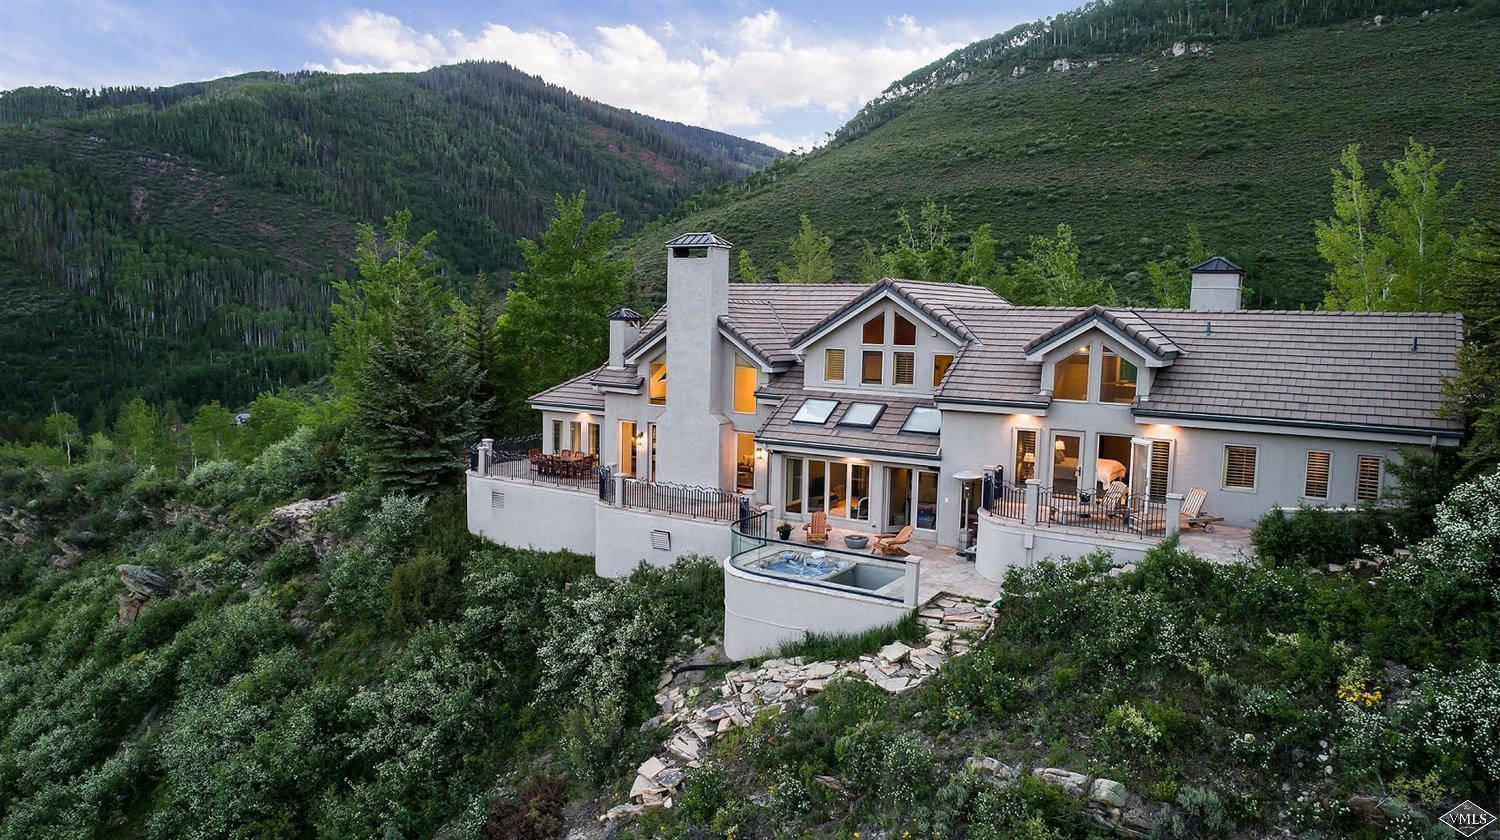 Top of the world views from this one of a kind home in the Buffehr Creek neighborhood. With a mountain modern design this residence has expansive 180-degree views of the Gore Range and Vail Mountain. The sunny open floor plan is ideal for entertaining with 3-fireplaces, gourmet kitchen, wine cellar and large great room. Exquisite landscaping and heated flagstone patio, 3-car garage and caretaker's suite/guest apartment.